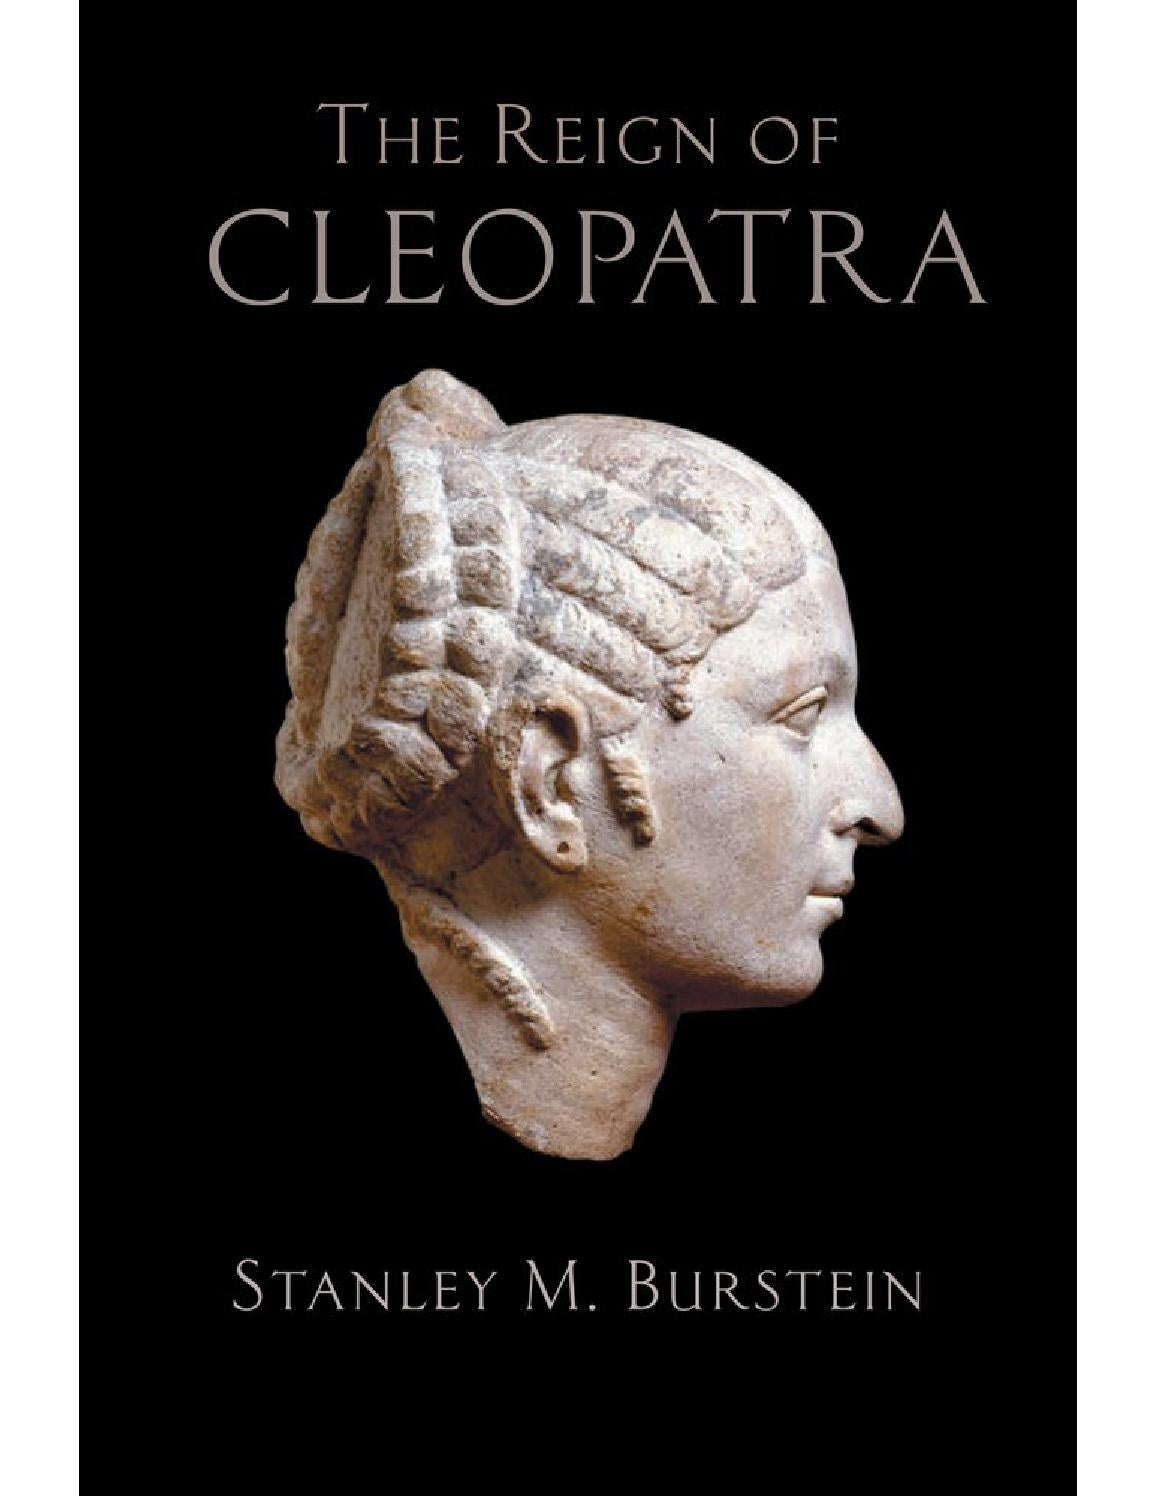 The reign of cleopatra essay